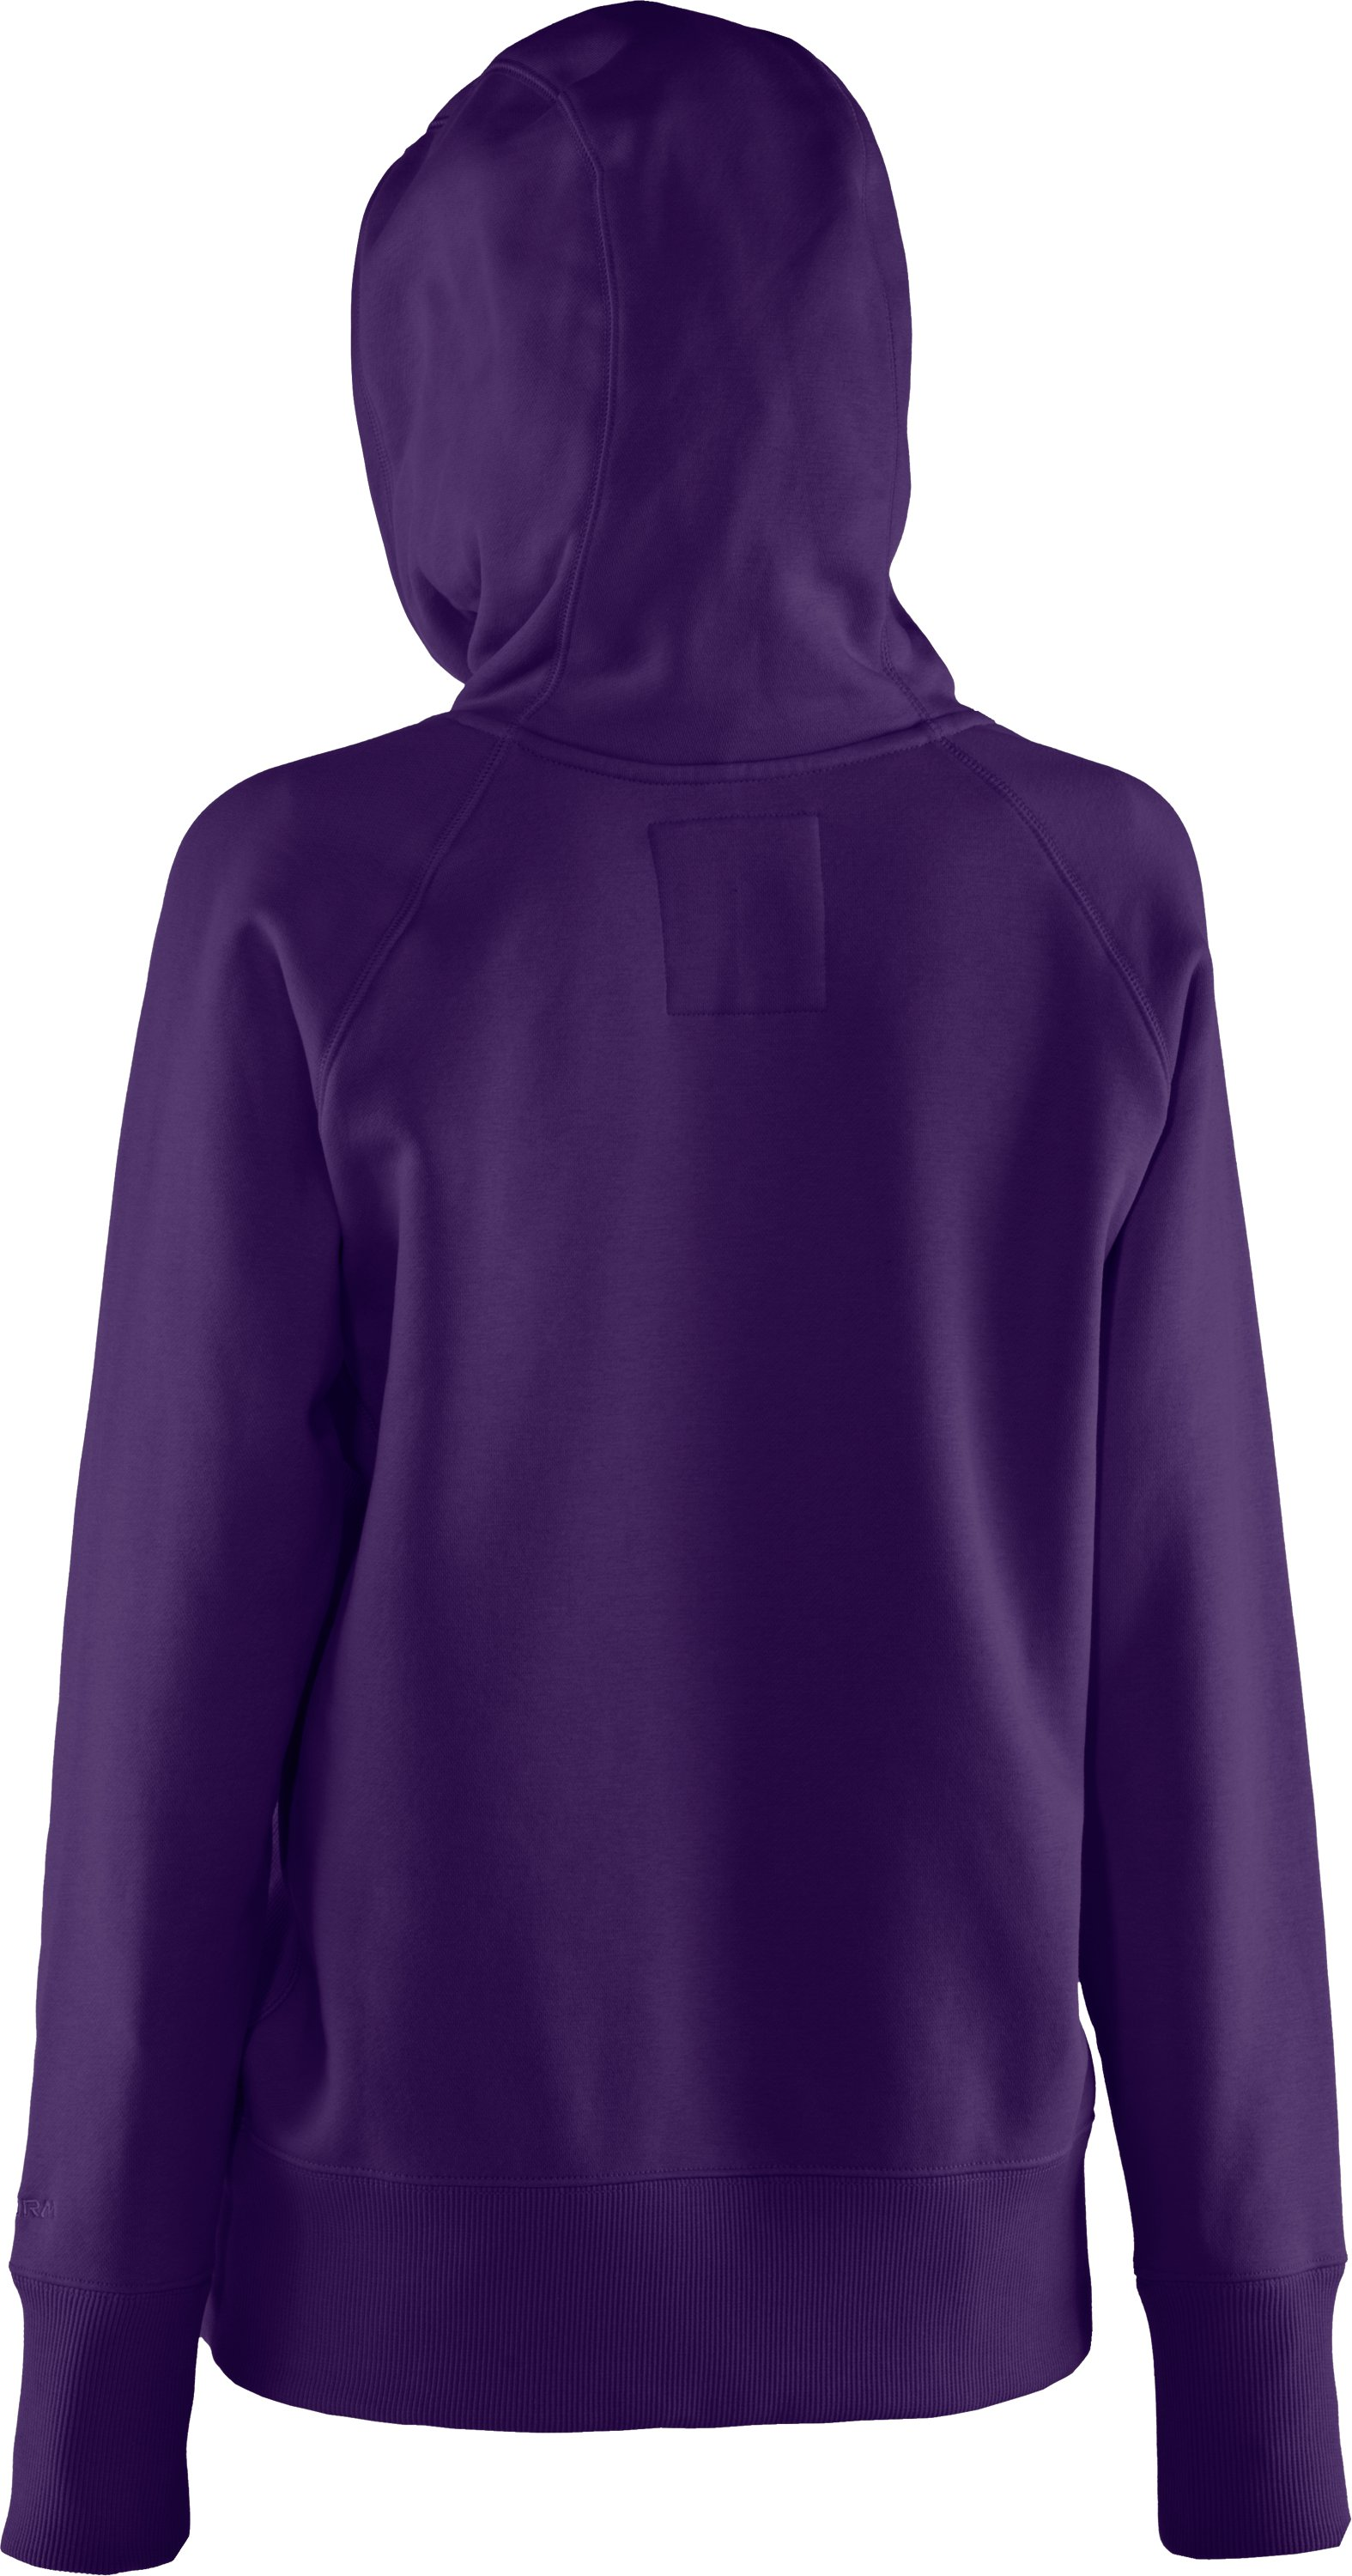 Women's Charged Cotton® Storm Hoodie, Zone, undefined